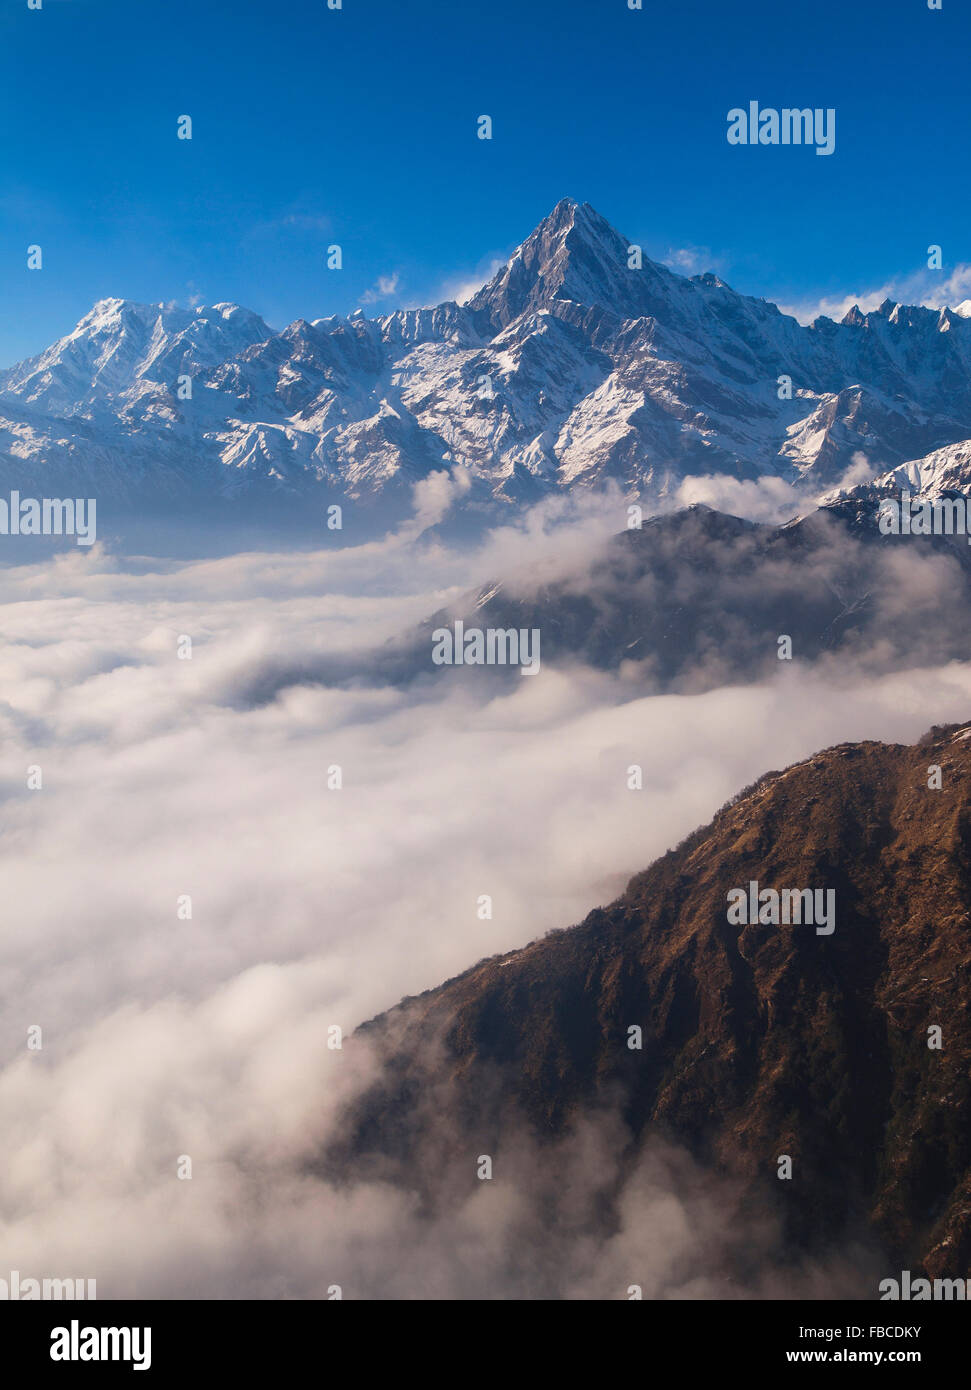 Aerial view of foothills and mountains in Annapurna Region Nepal - Stock Image